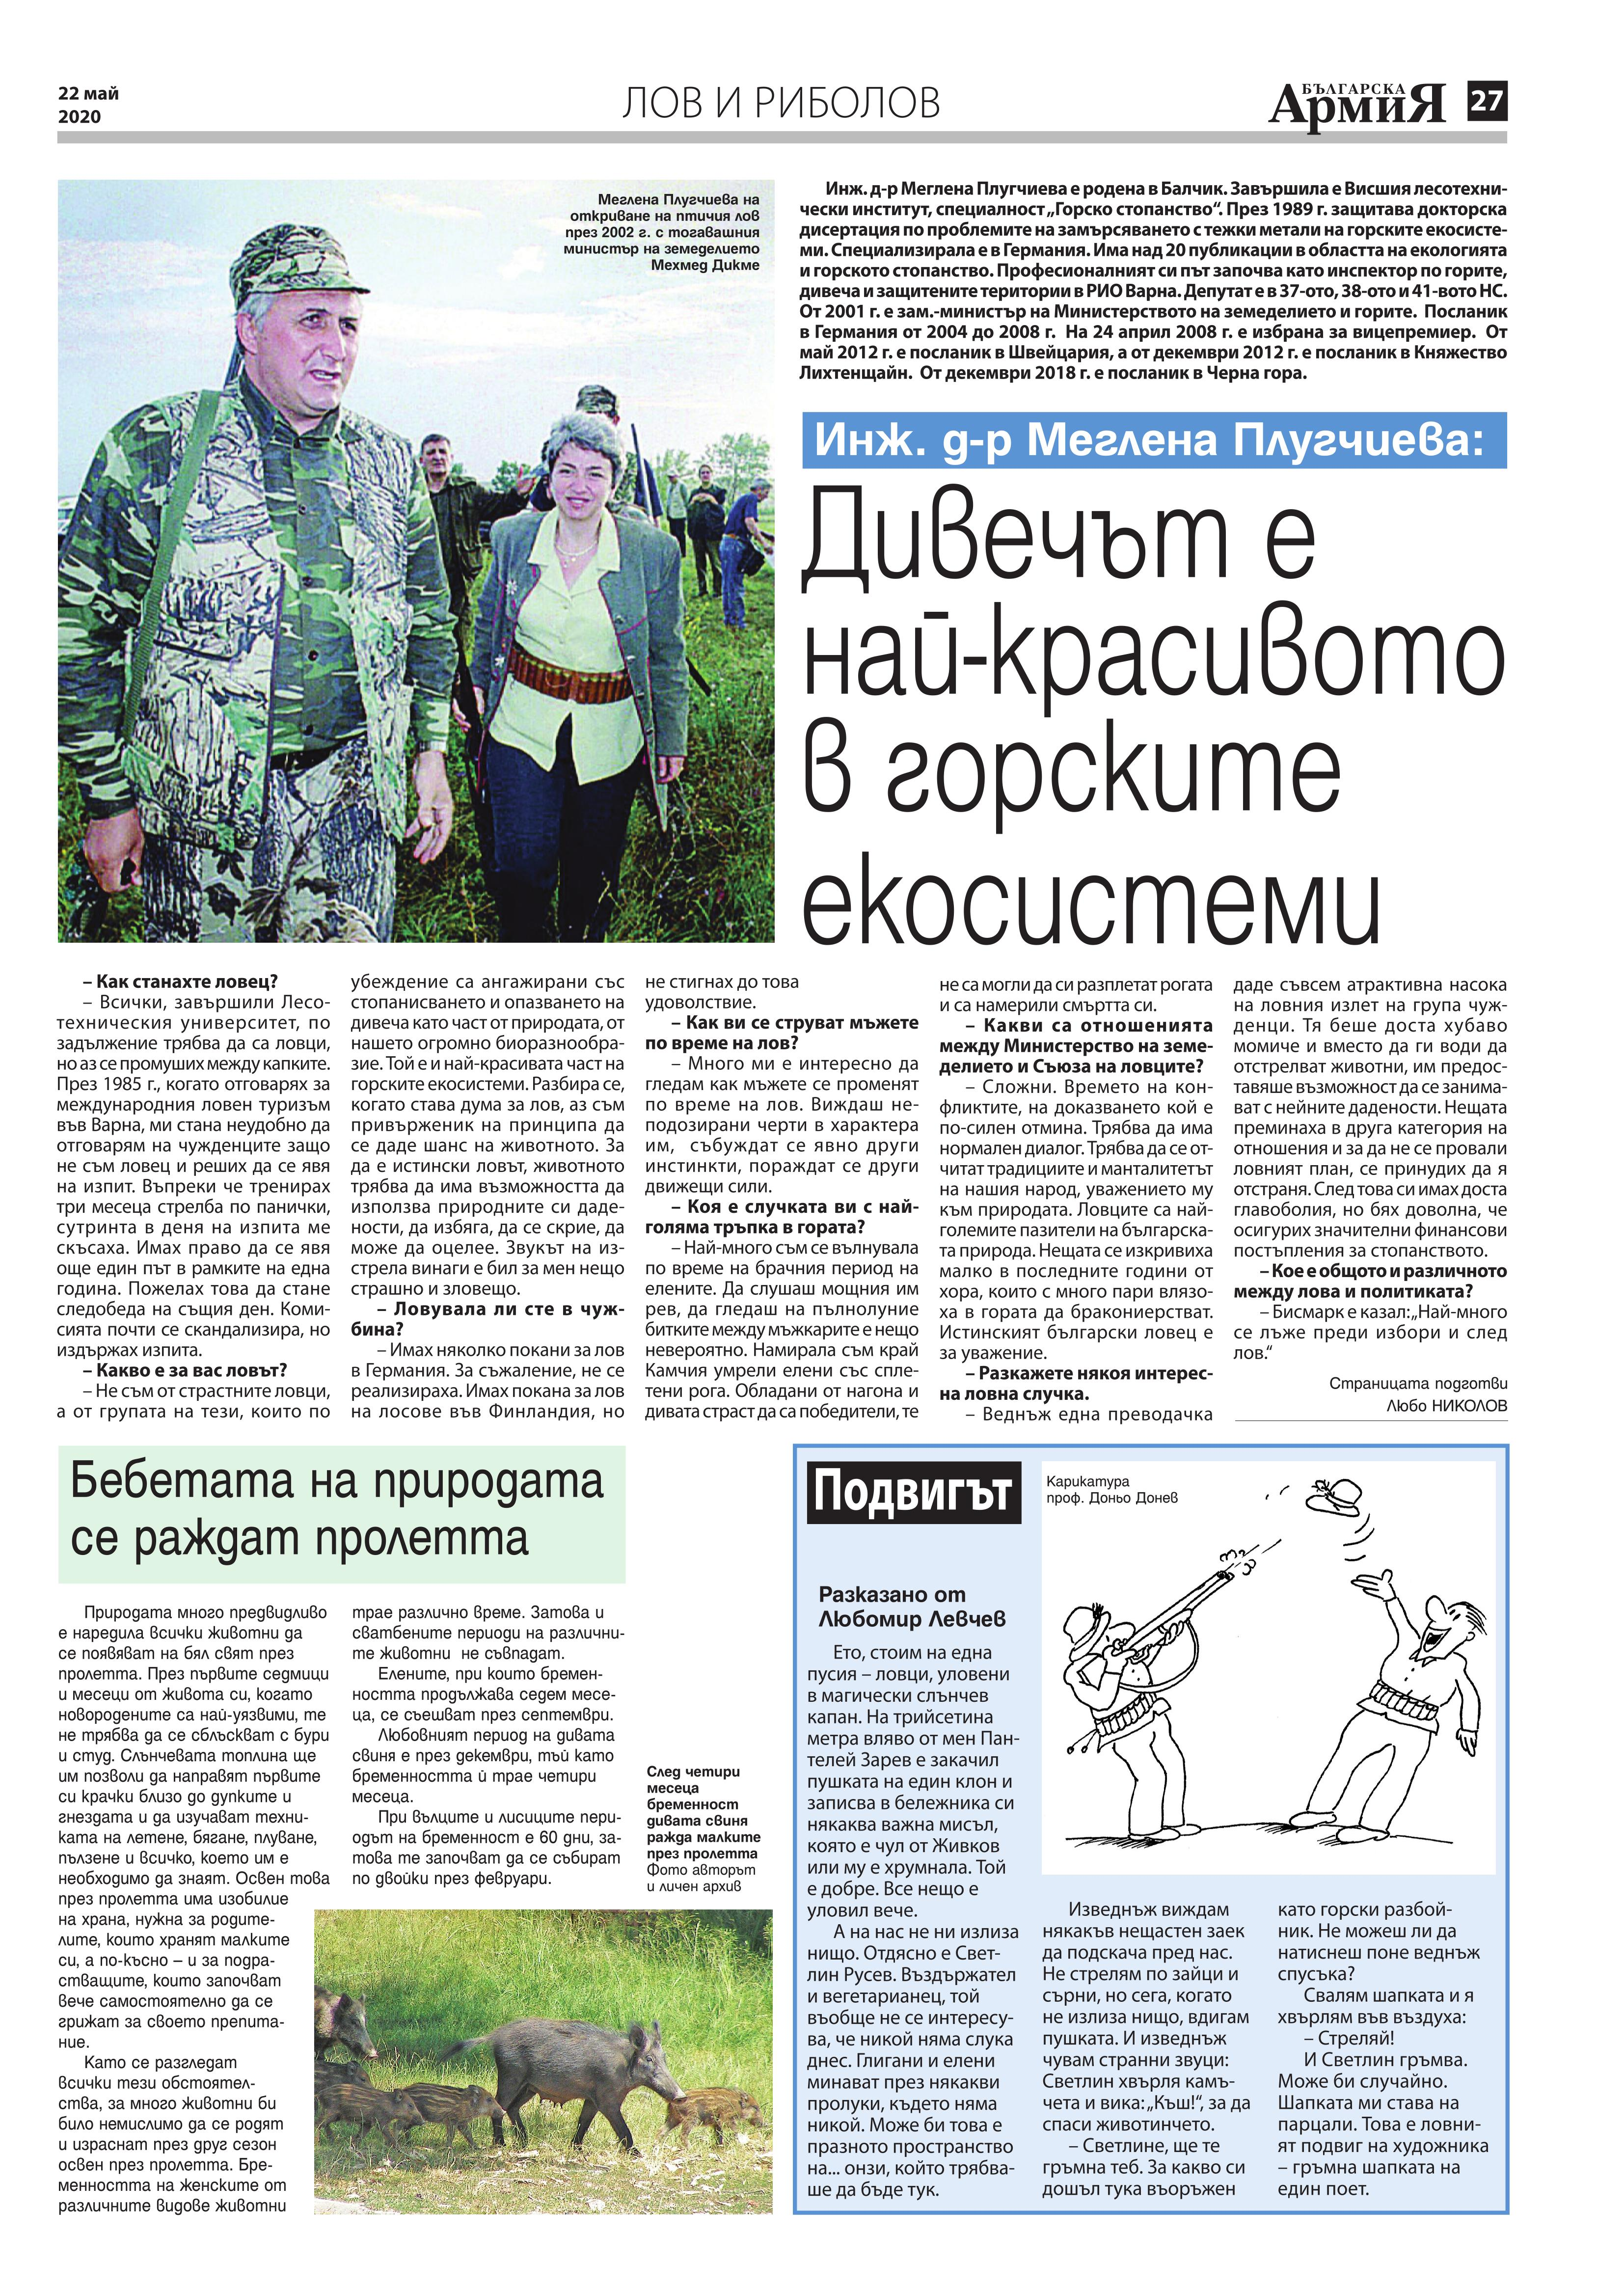 https://www.armymedia.bg/wp-content/uploads/2015/06/27.page1_-111.jpg